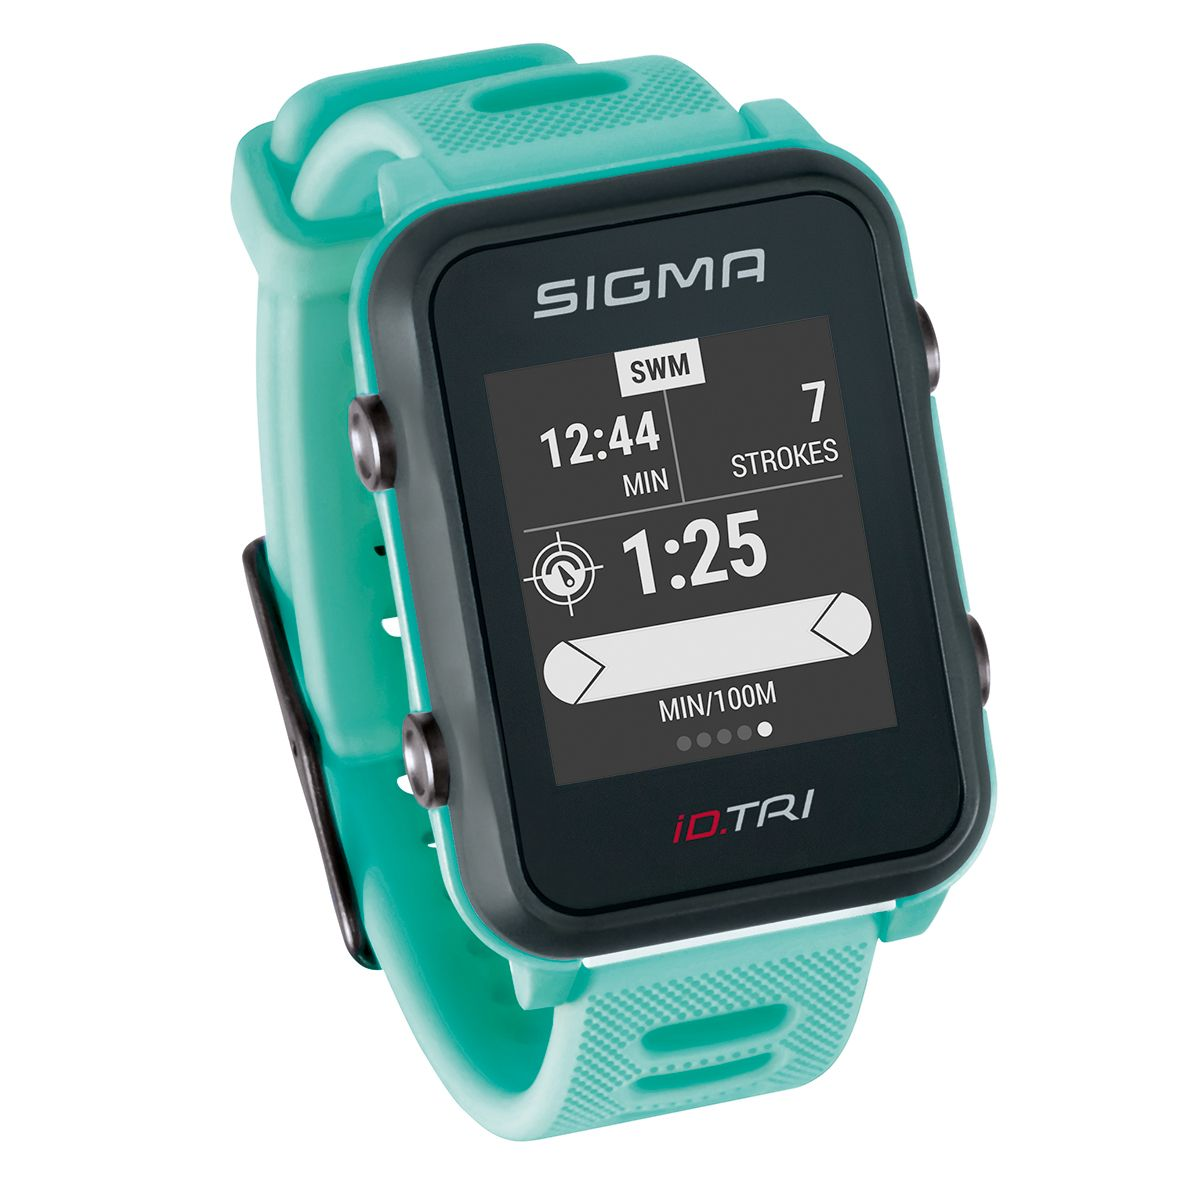 Sigma chest strap for PC-watches with transmitter and elastic st heart rate monitor accessories